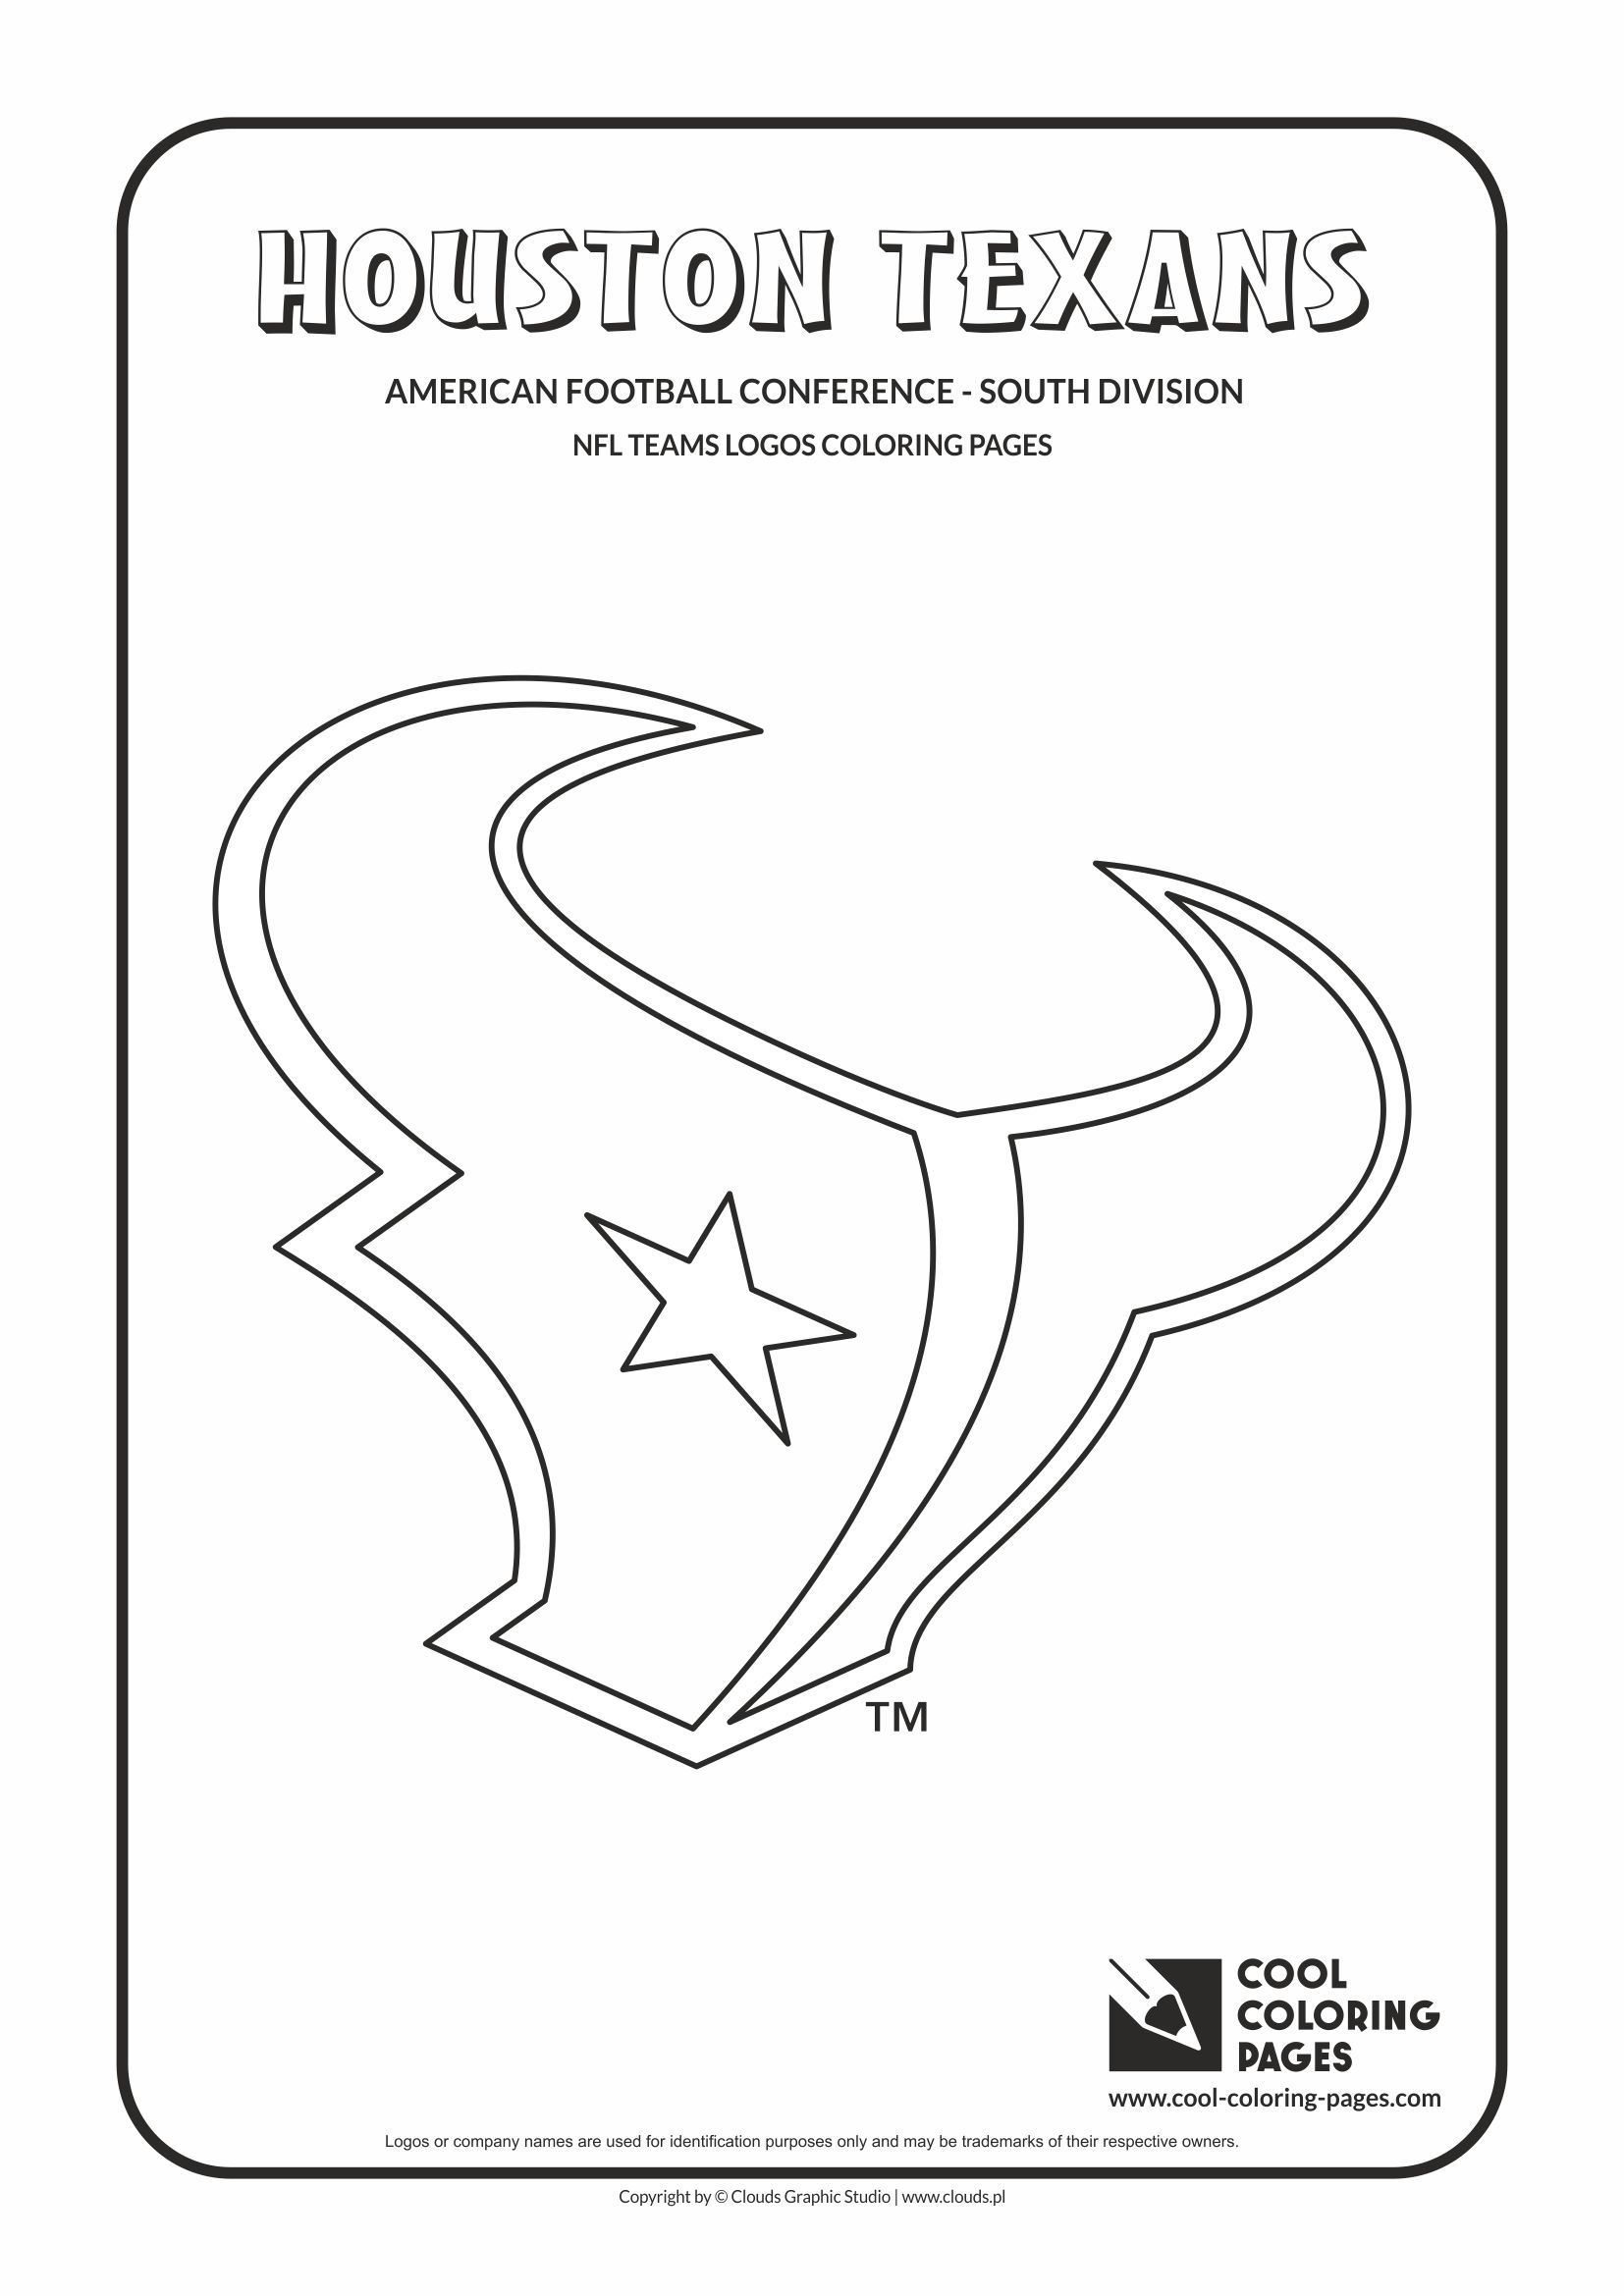 Houston texans coloring pages coloring pages for Houston texans logo template